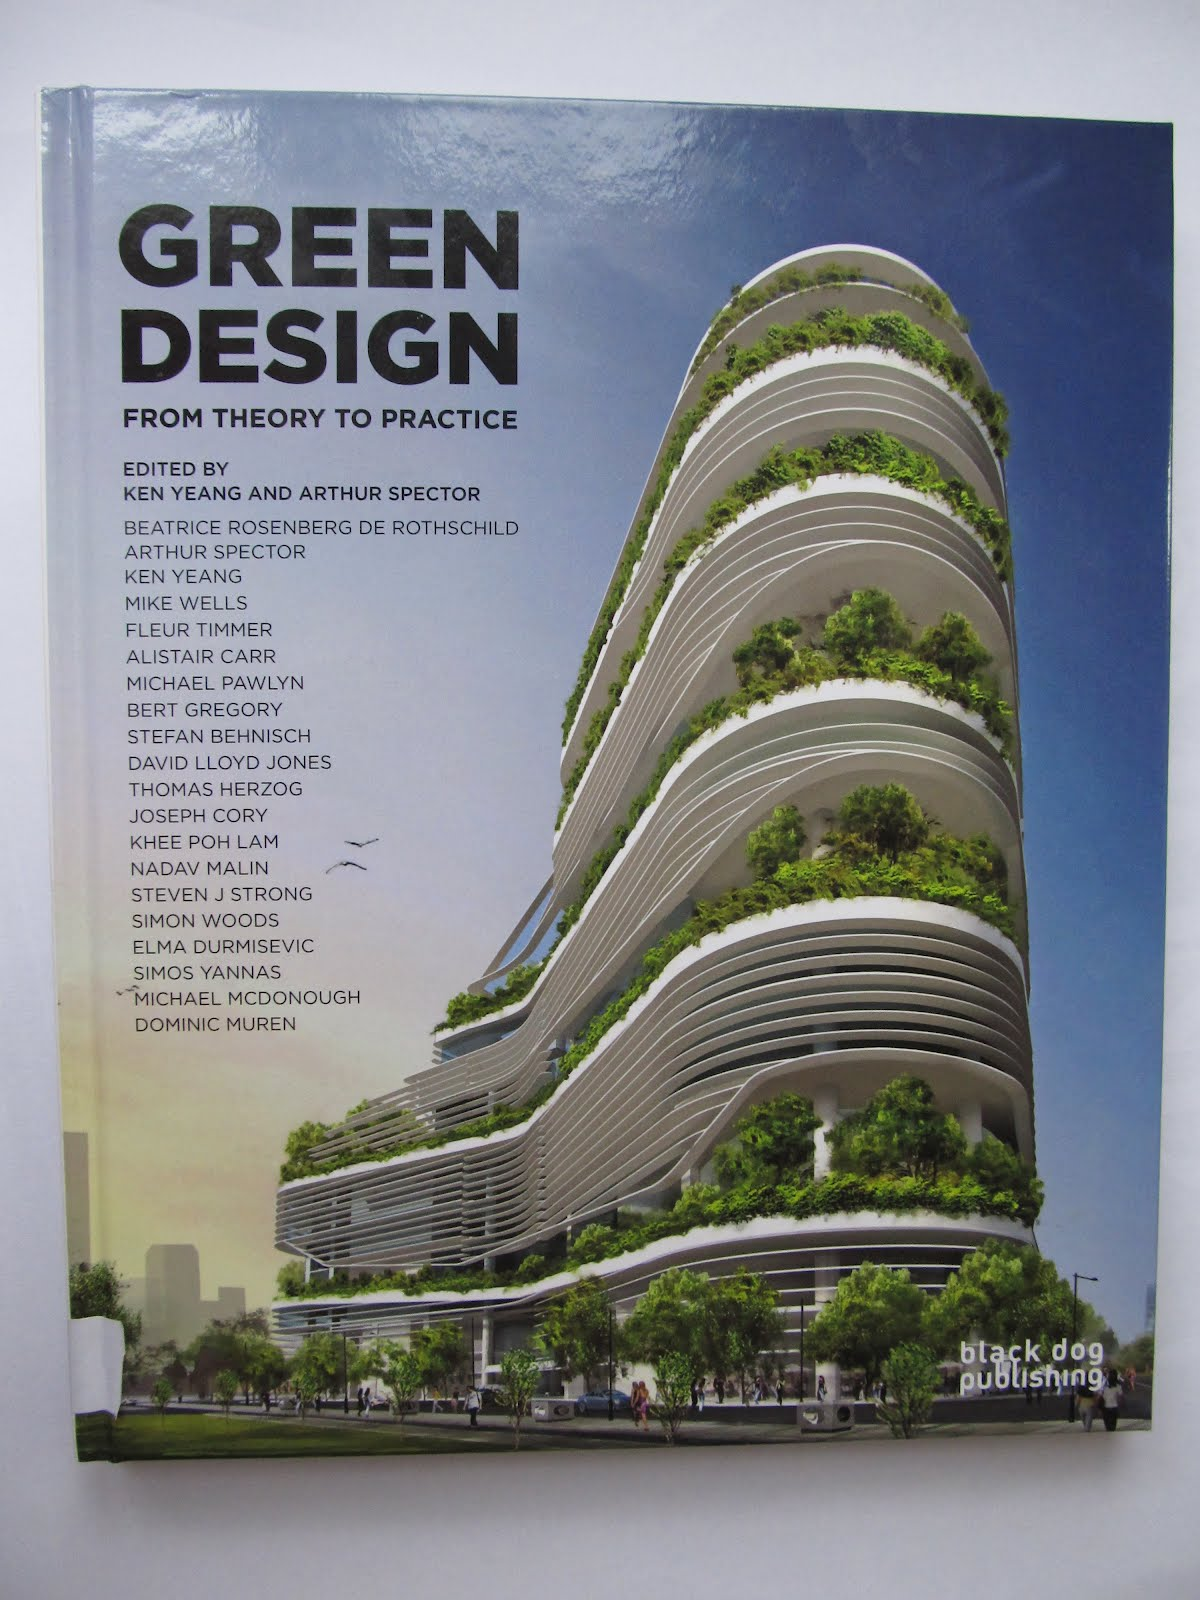 green architecture essay example about green architecture essay a  example about green architecture essay write an essay on green architecture wiki describe